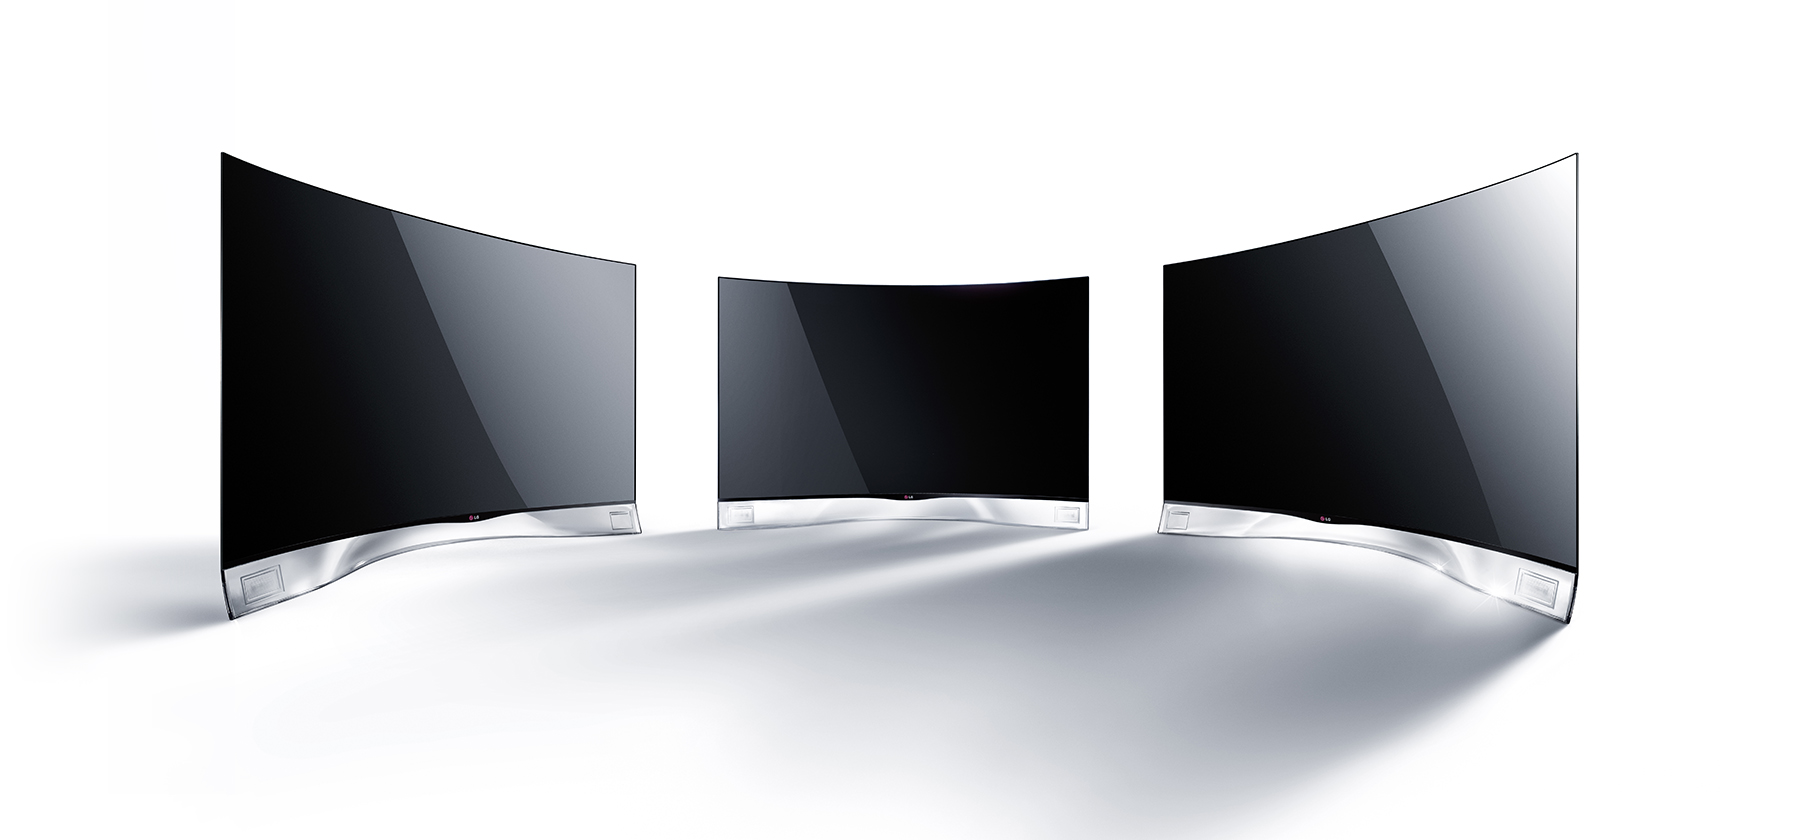 LG To Launch OLED 4K TV